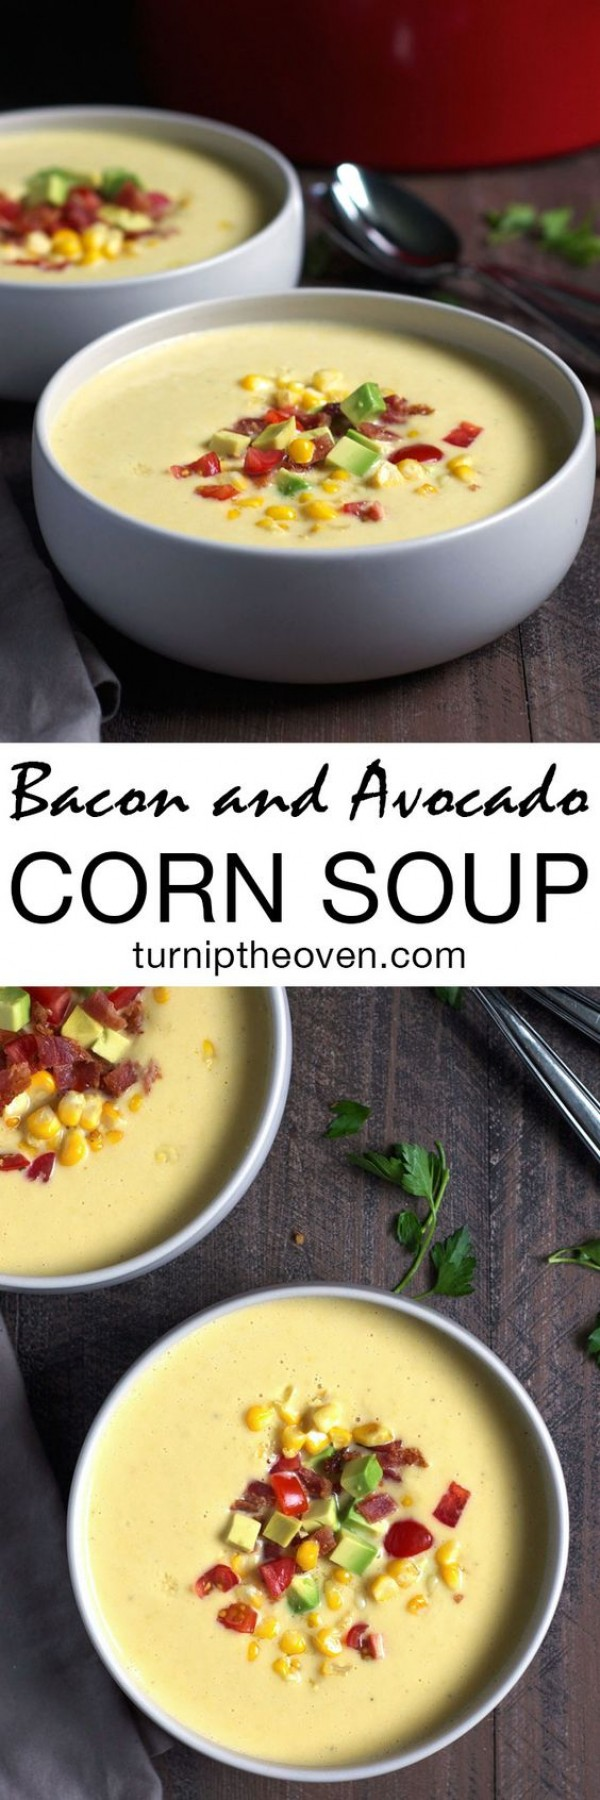 Get the recipe Bacon and Avocado Corn Soup @recipes_to_go